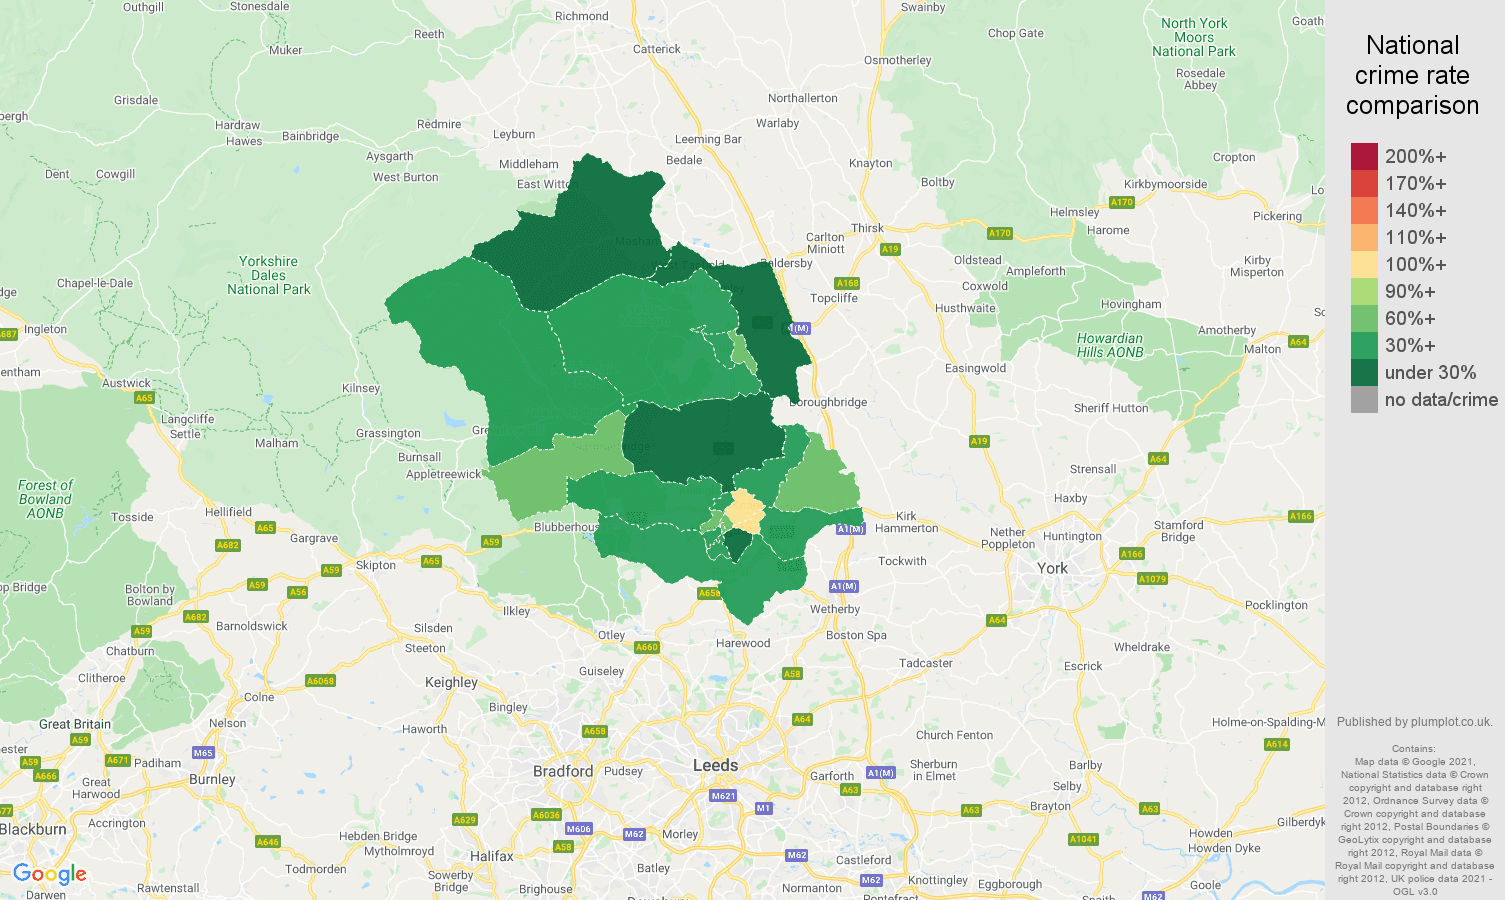 Harrogate violent crime rate comparison map